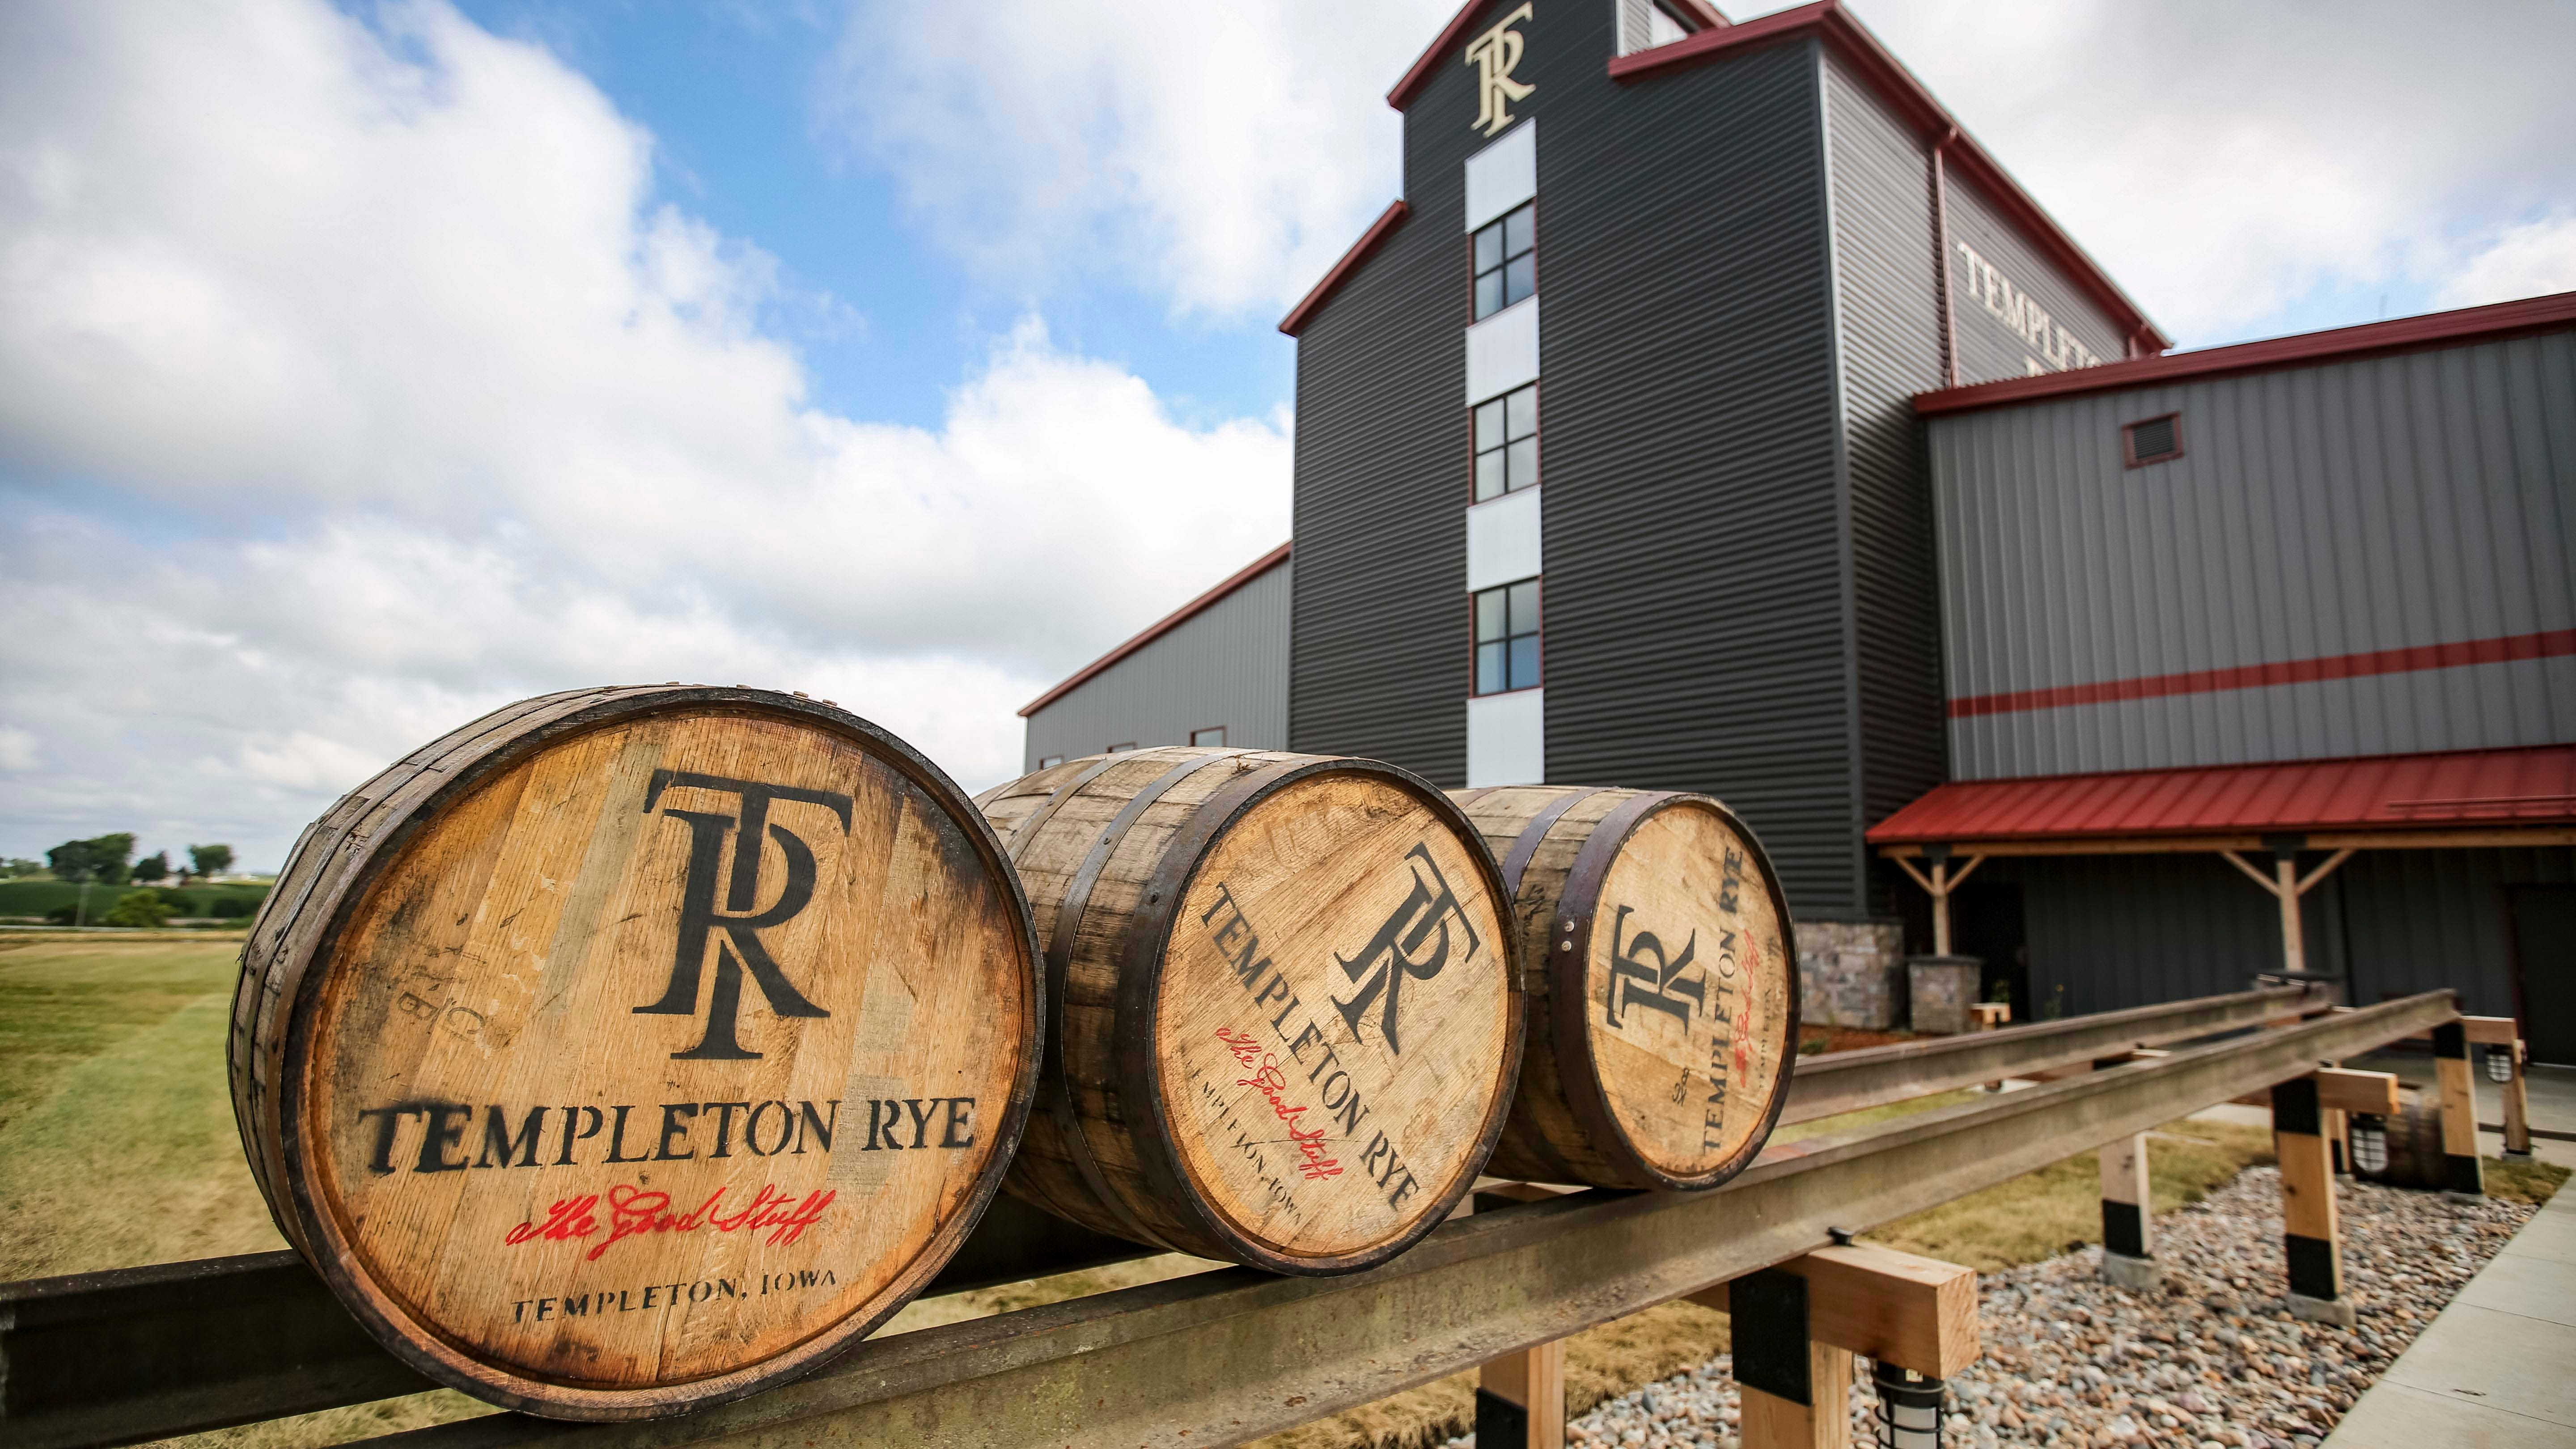 Iowa's Templeton Rye wins two gold medals in San Francisco World Spirits Competition